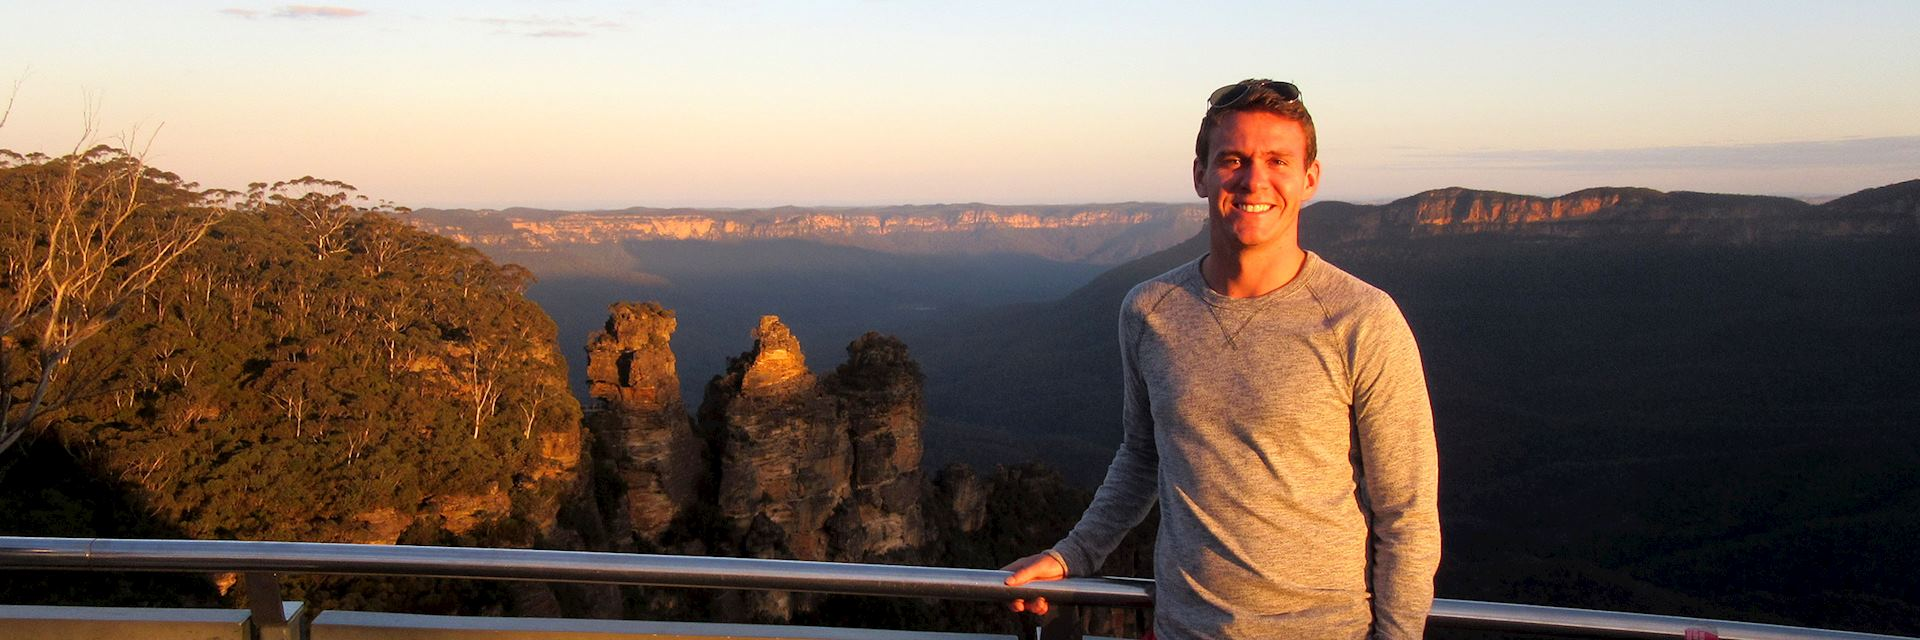 Joshua at The Three Sisters in the Blue Mountains, Australia